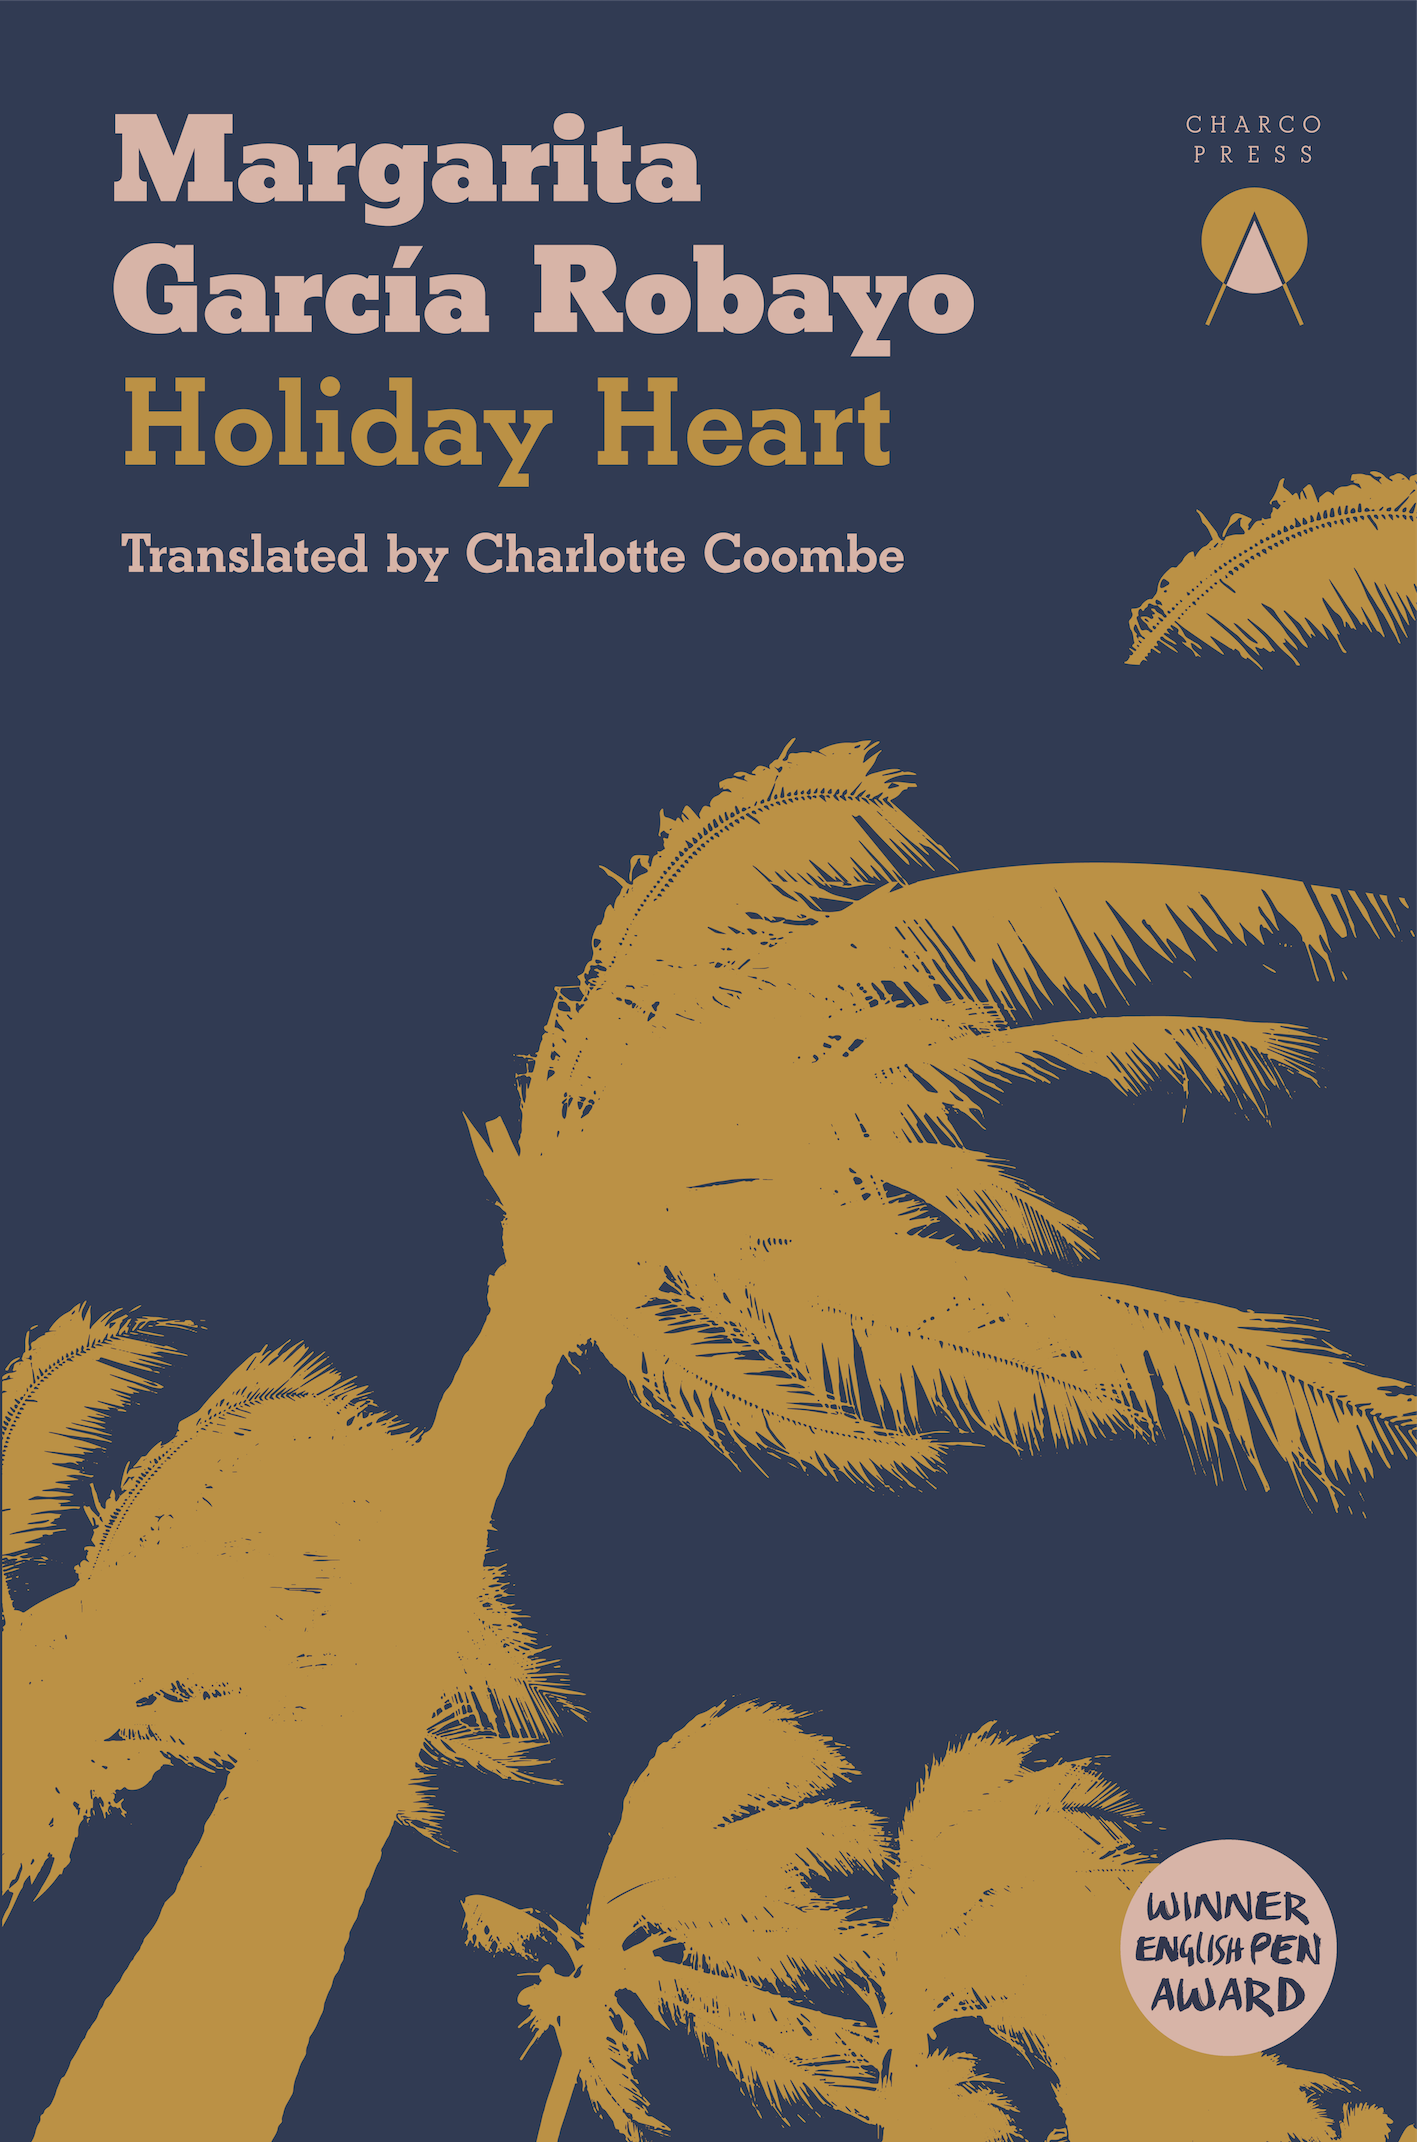 Holiday Heart by Margarita García Robayo translated by Charlotte Coombe